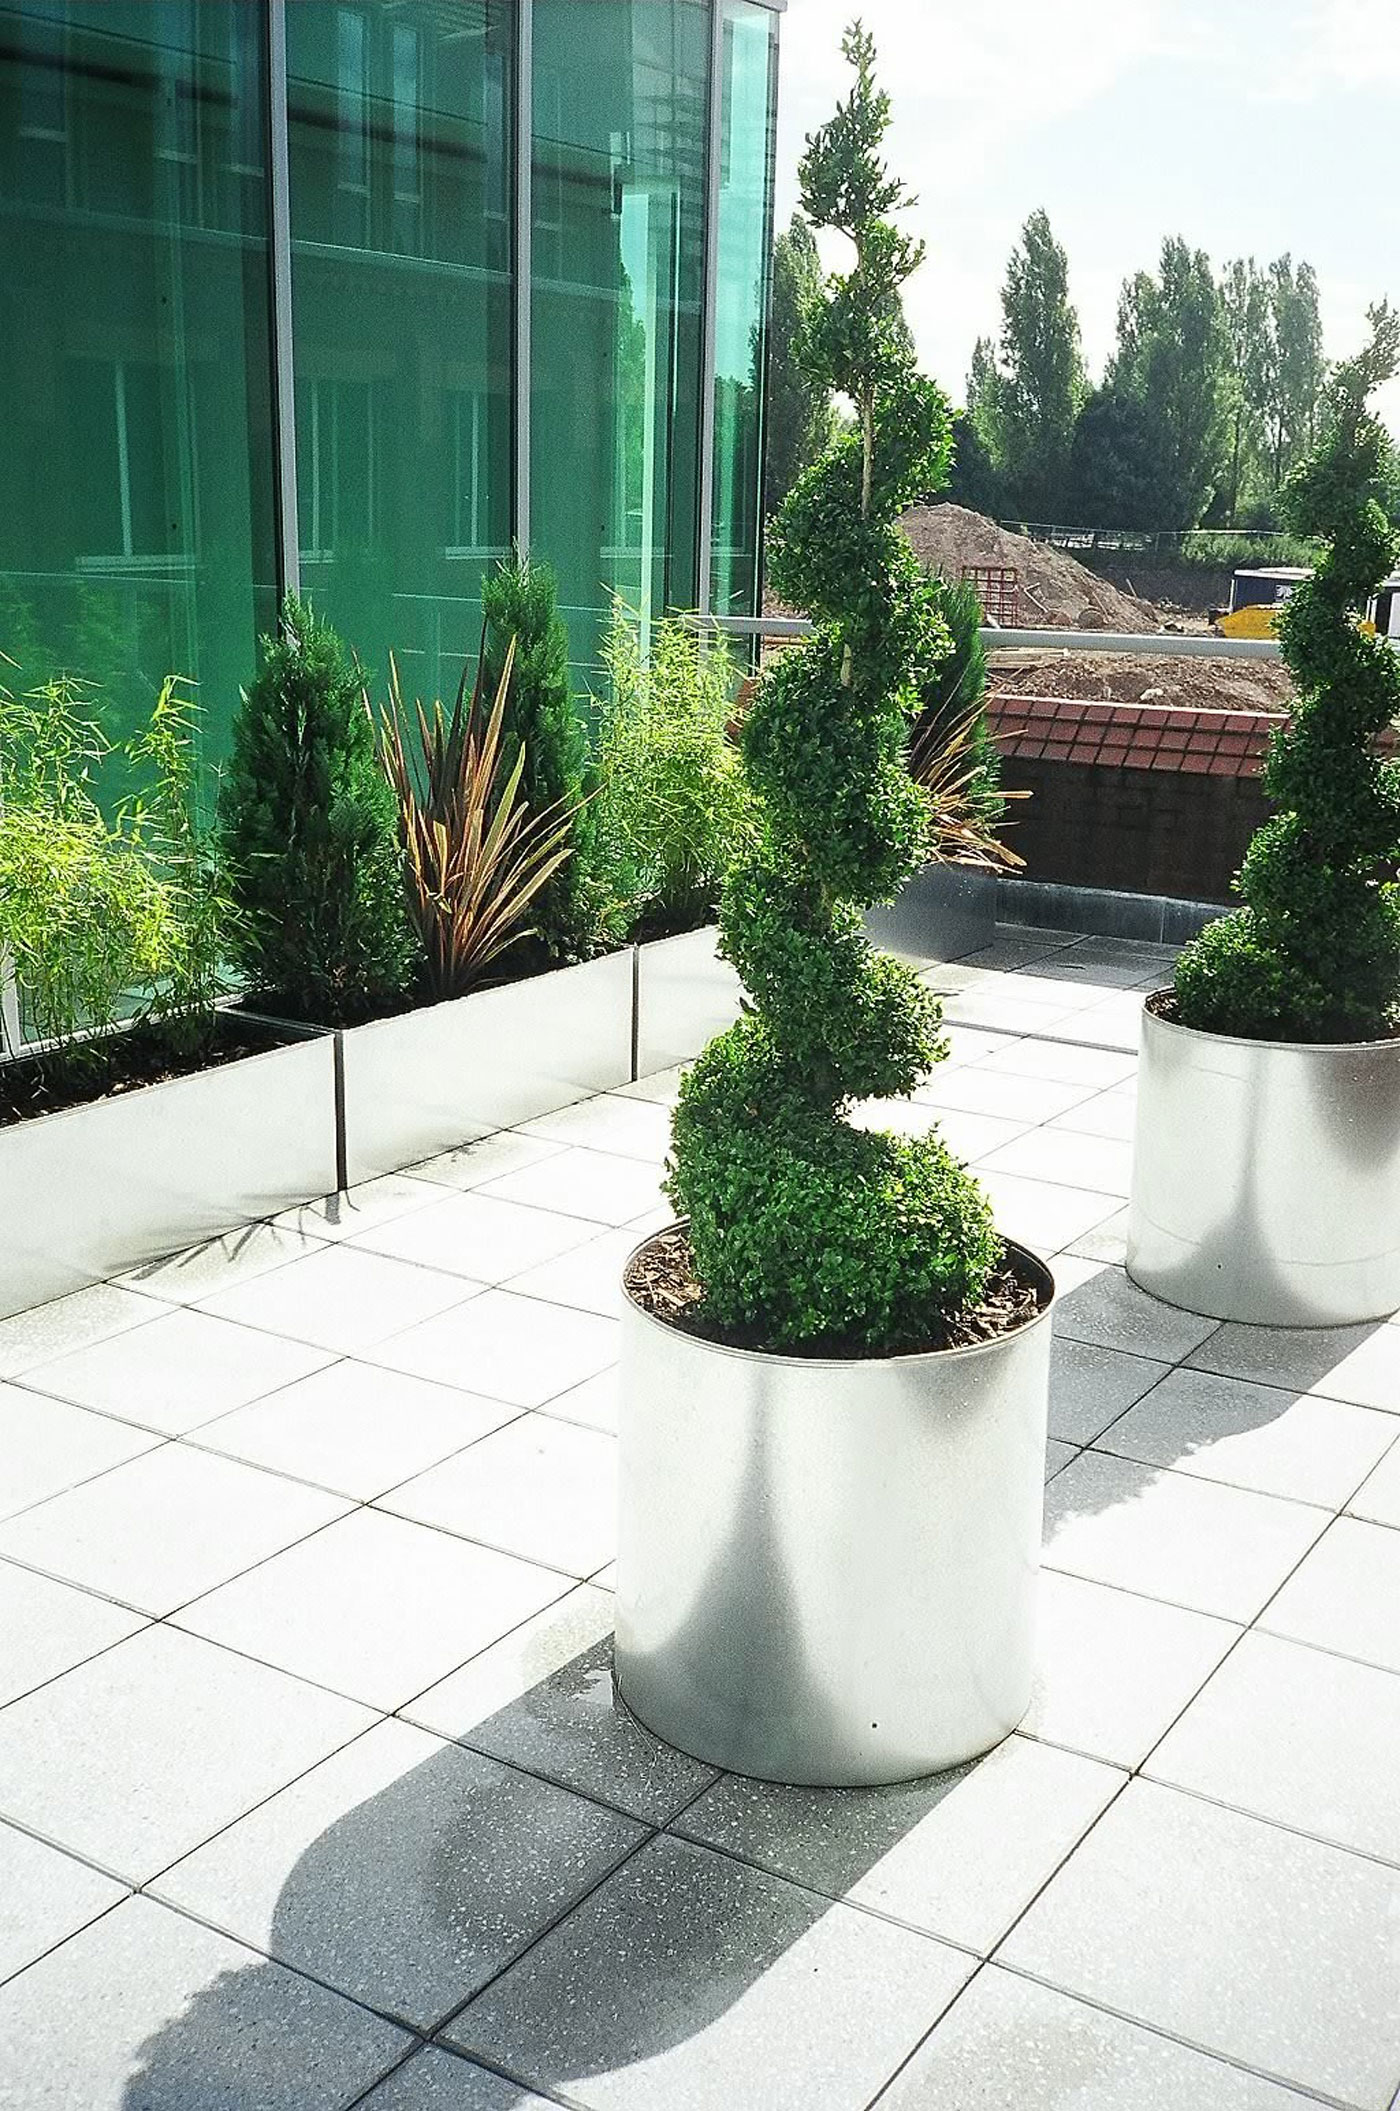 Exterior Landscaping: Commercial Exterior Landscaping Services